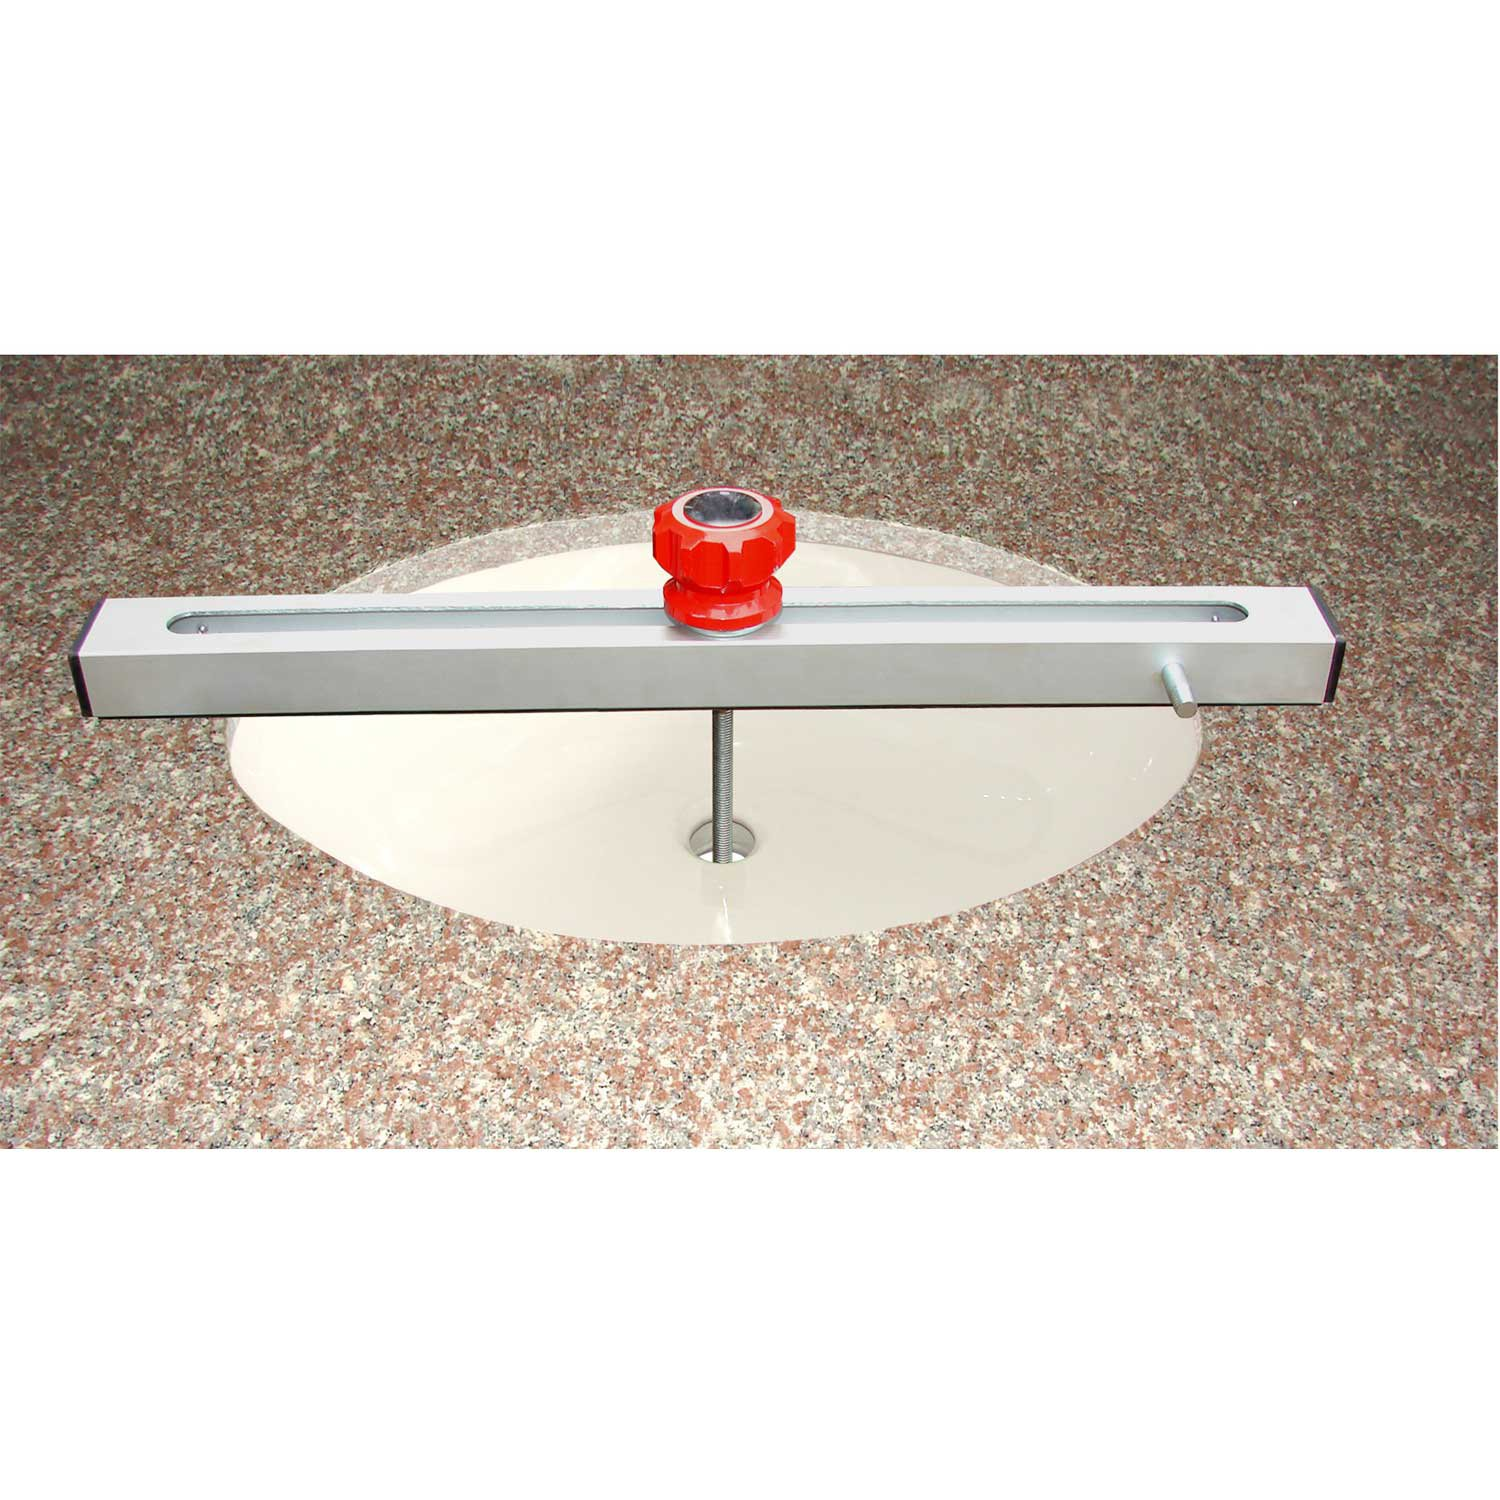 Abaco SLS24 Sink Lock Support 24'' Length and 19'' Depth W.L.L. 100 Lb. by ABACO